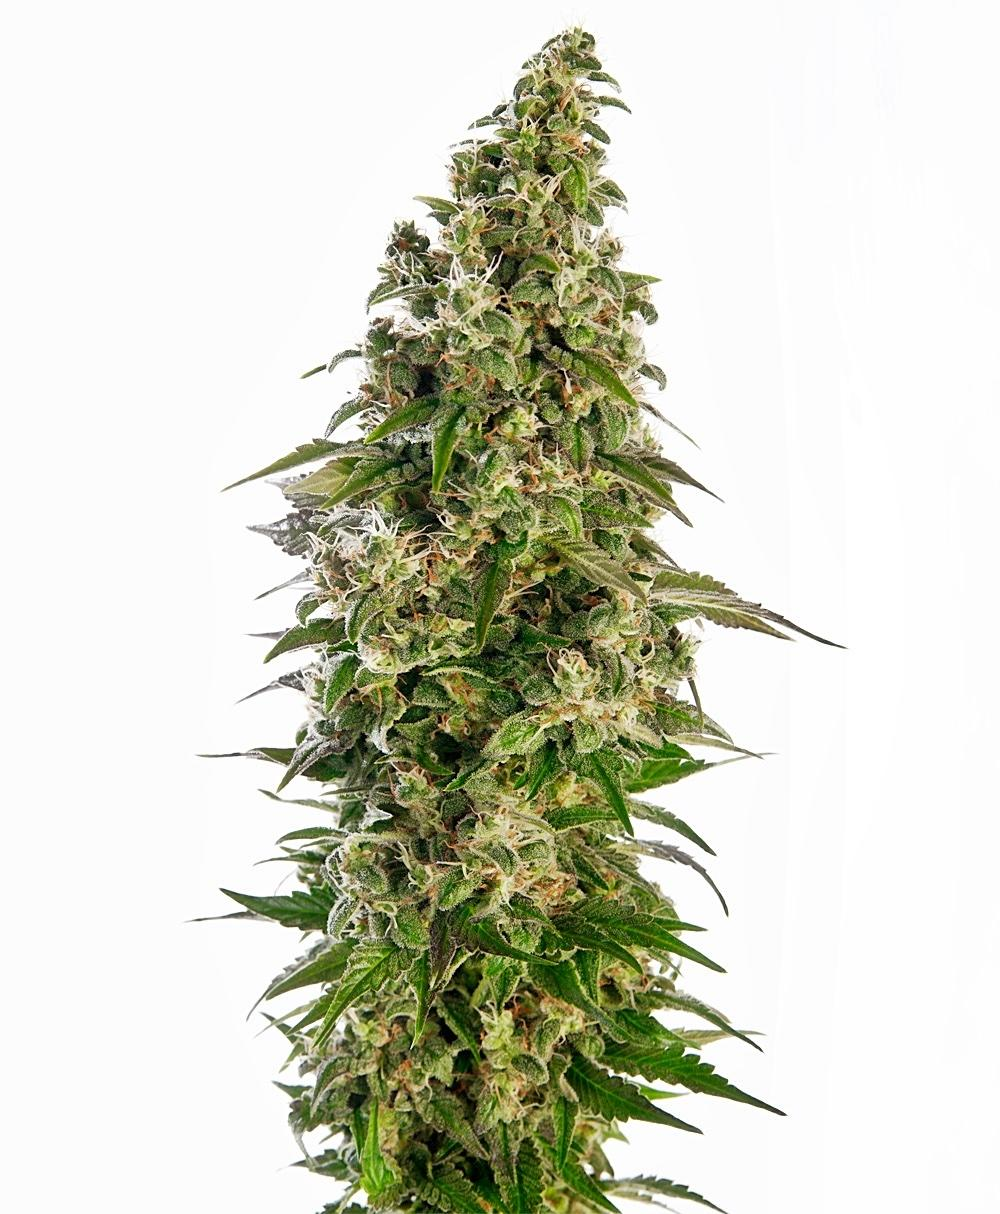 Sensi Seeds Afghani #1 Auto Feminised cannabis seeds